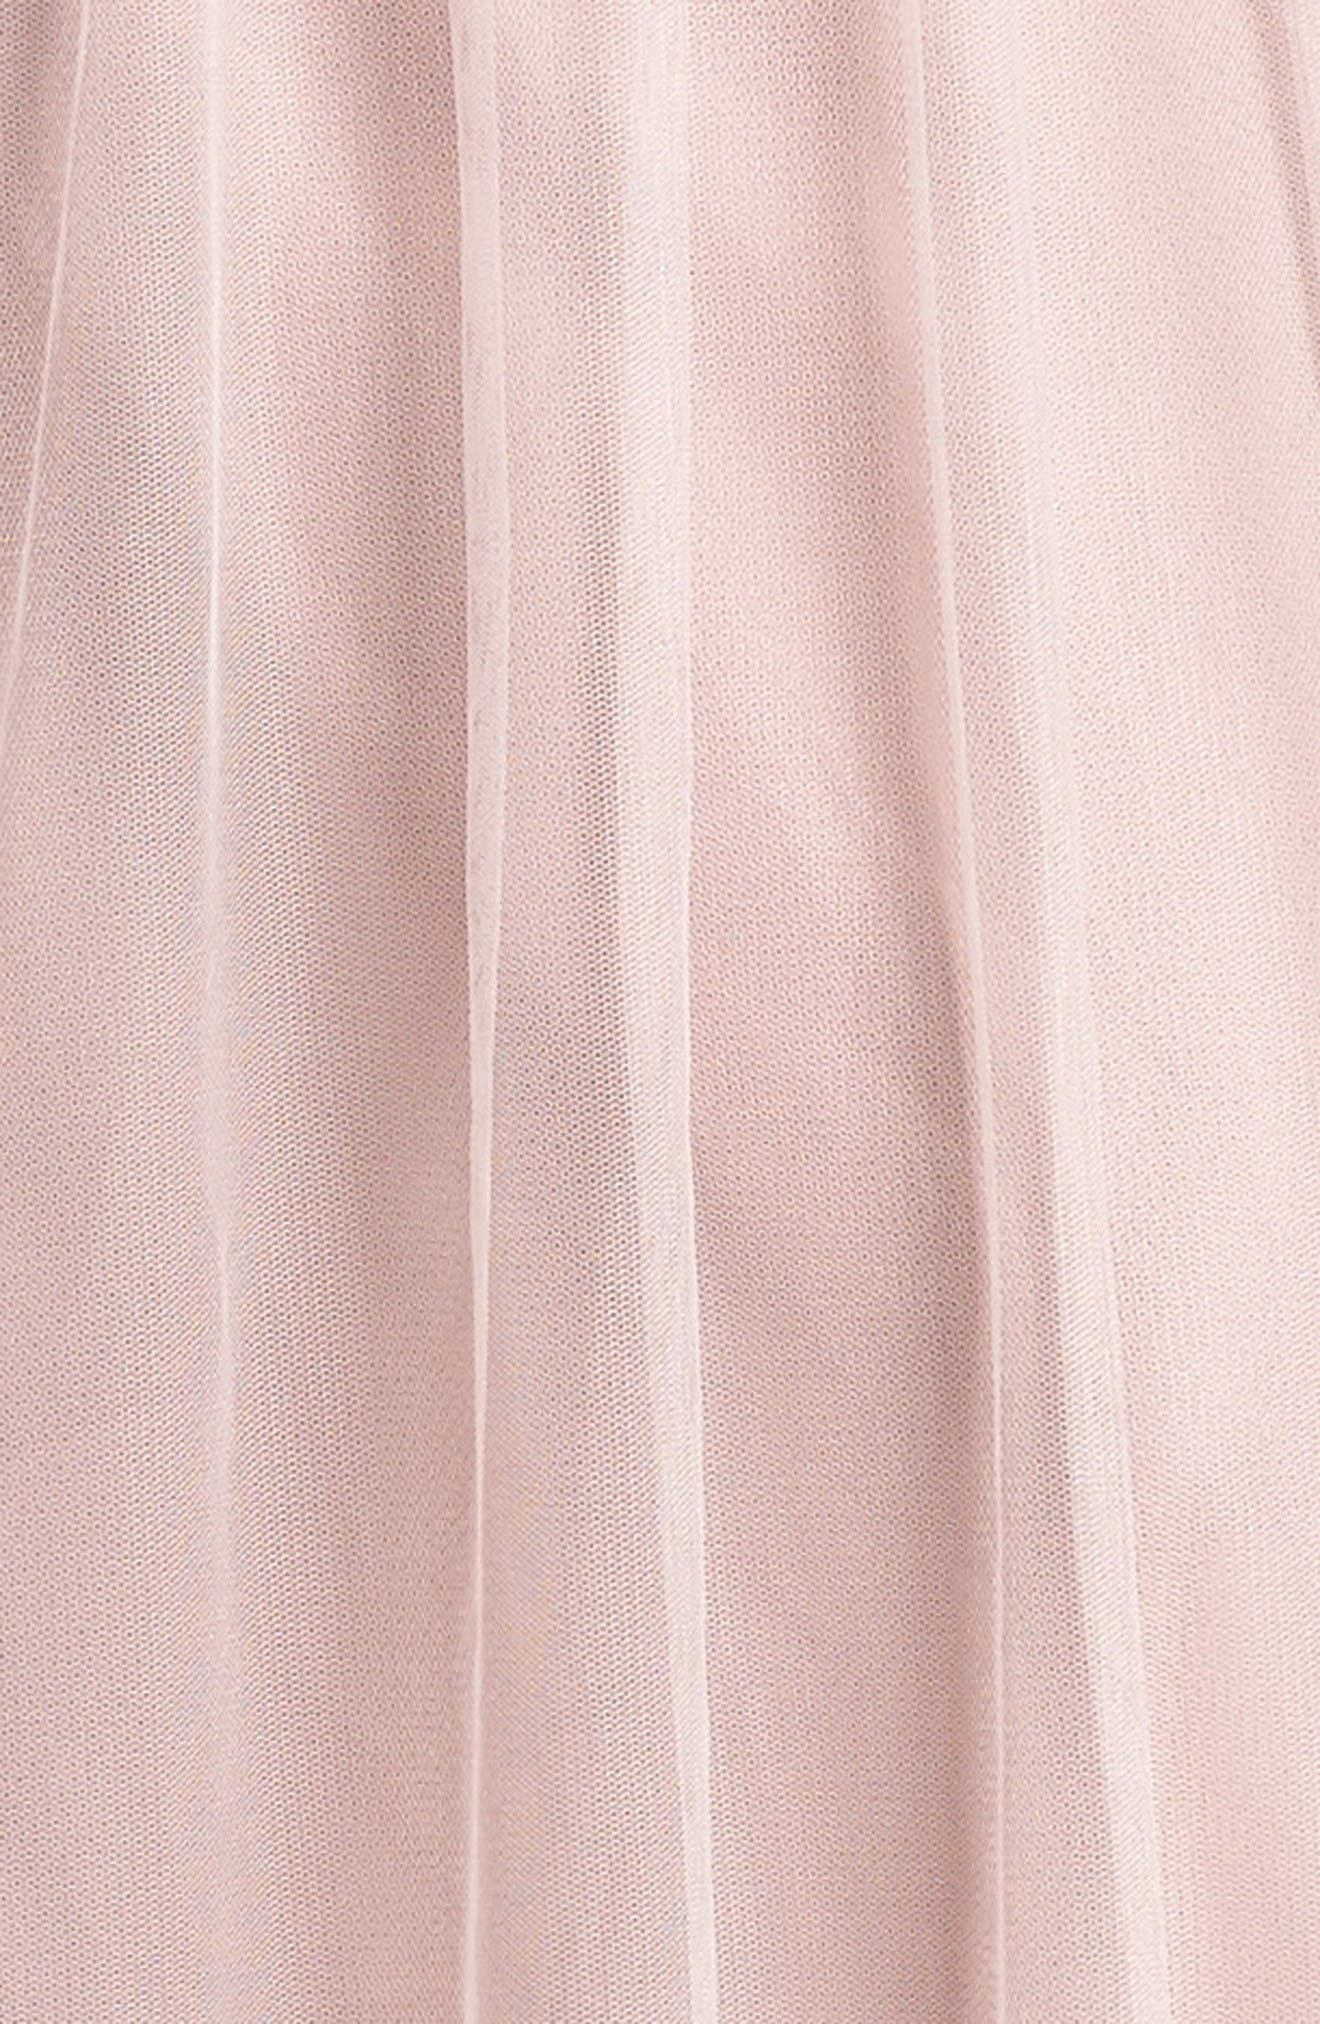 Illusion Gown,                             Alternate thumbnail 5, color,                             Dusty Rose